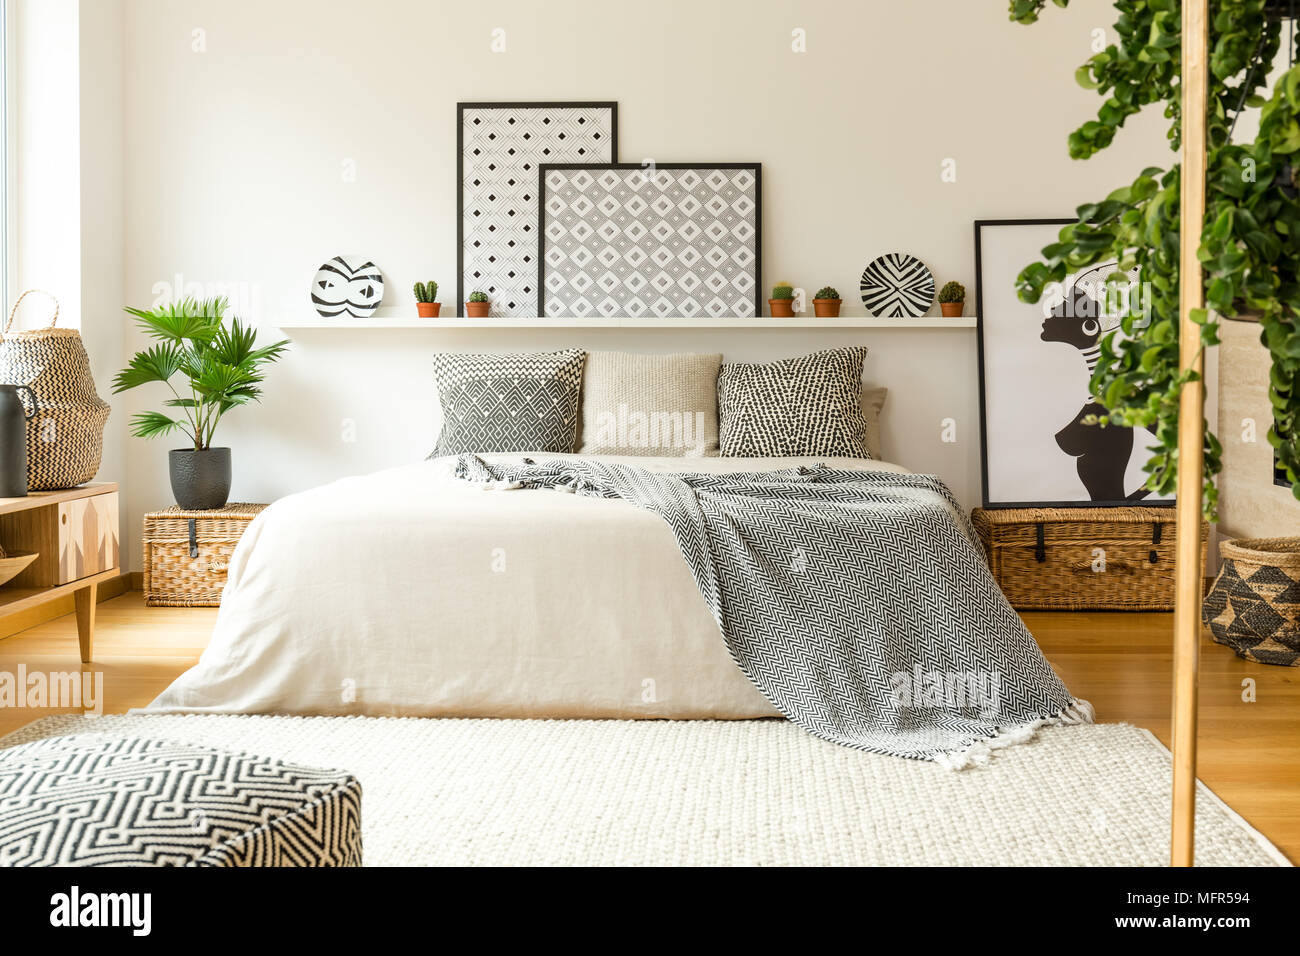 Warm bedroom interior with a comfy bed, patterned blanket and pillows, plants and modern graphics - Stock Image